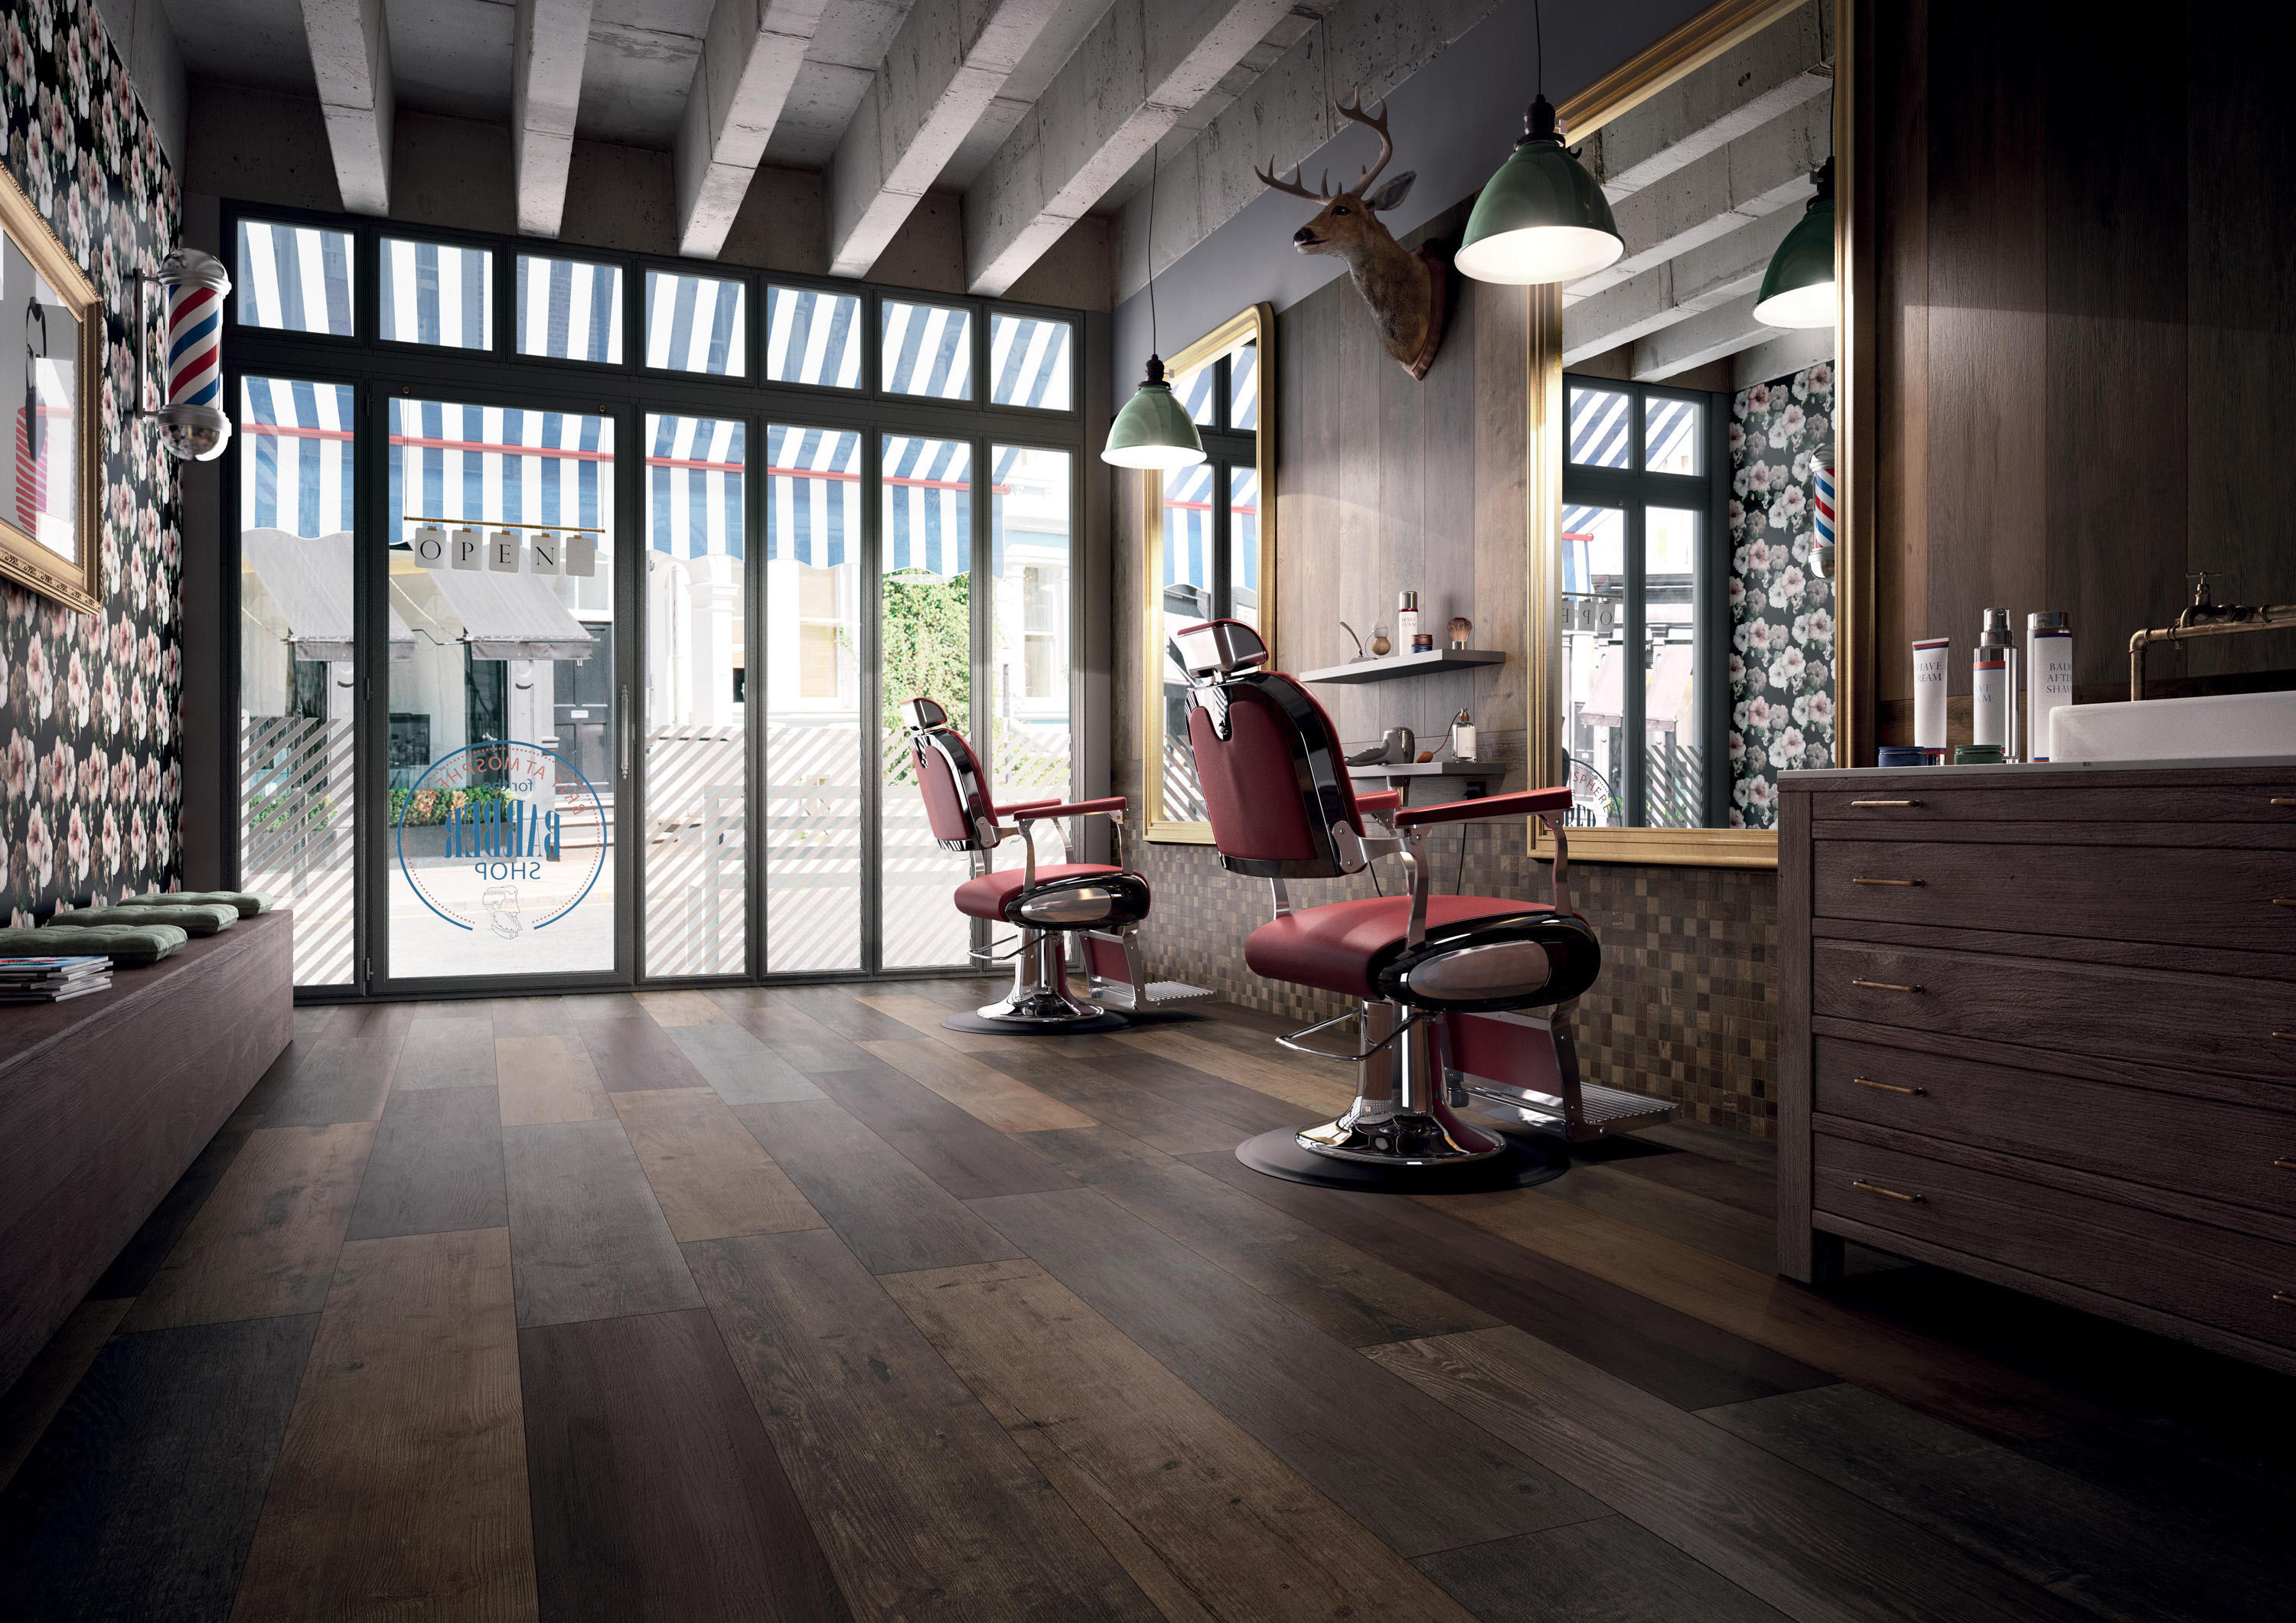 owens hardwood flooring distributors of restyle brown 81 tessere ceramic tiles from marca corona within ambient images